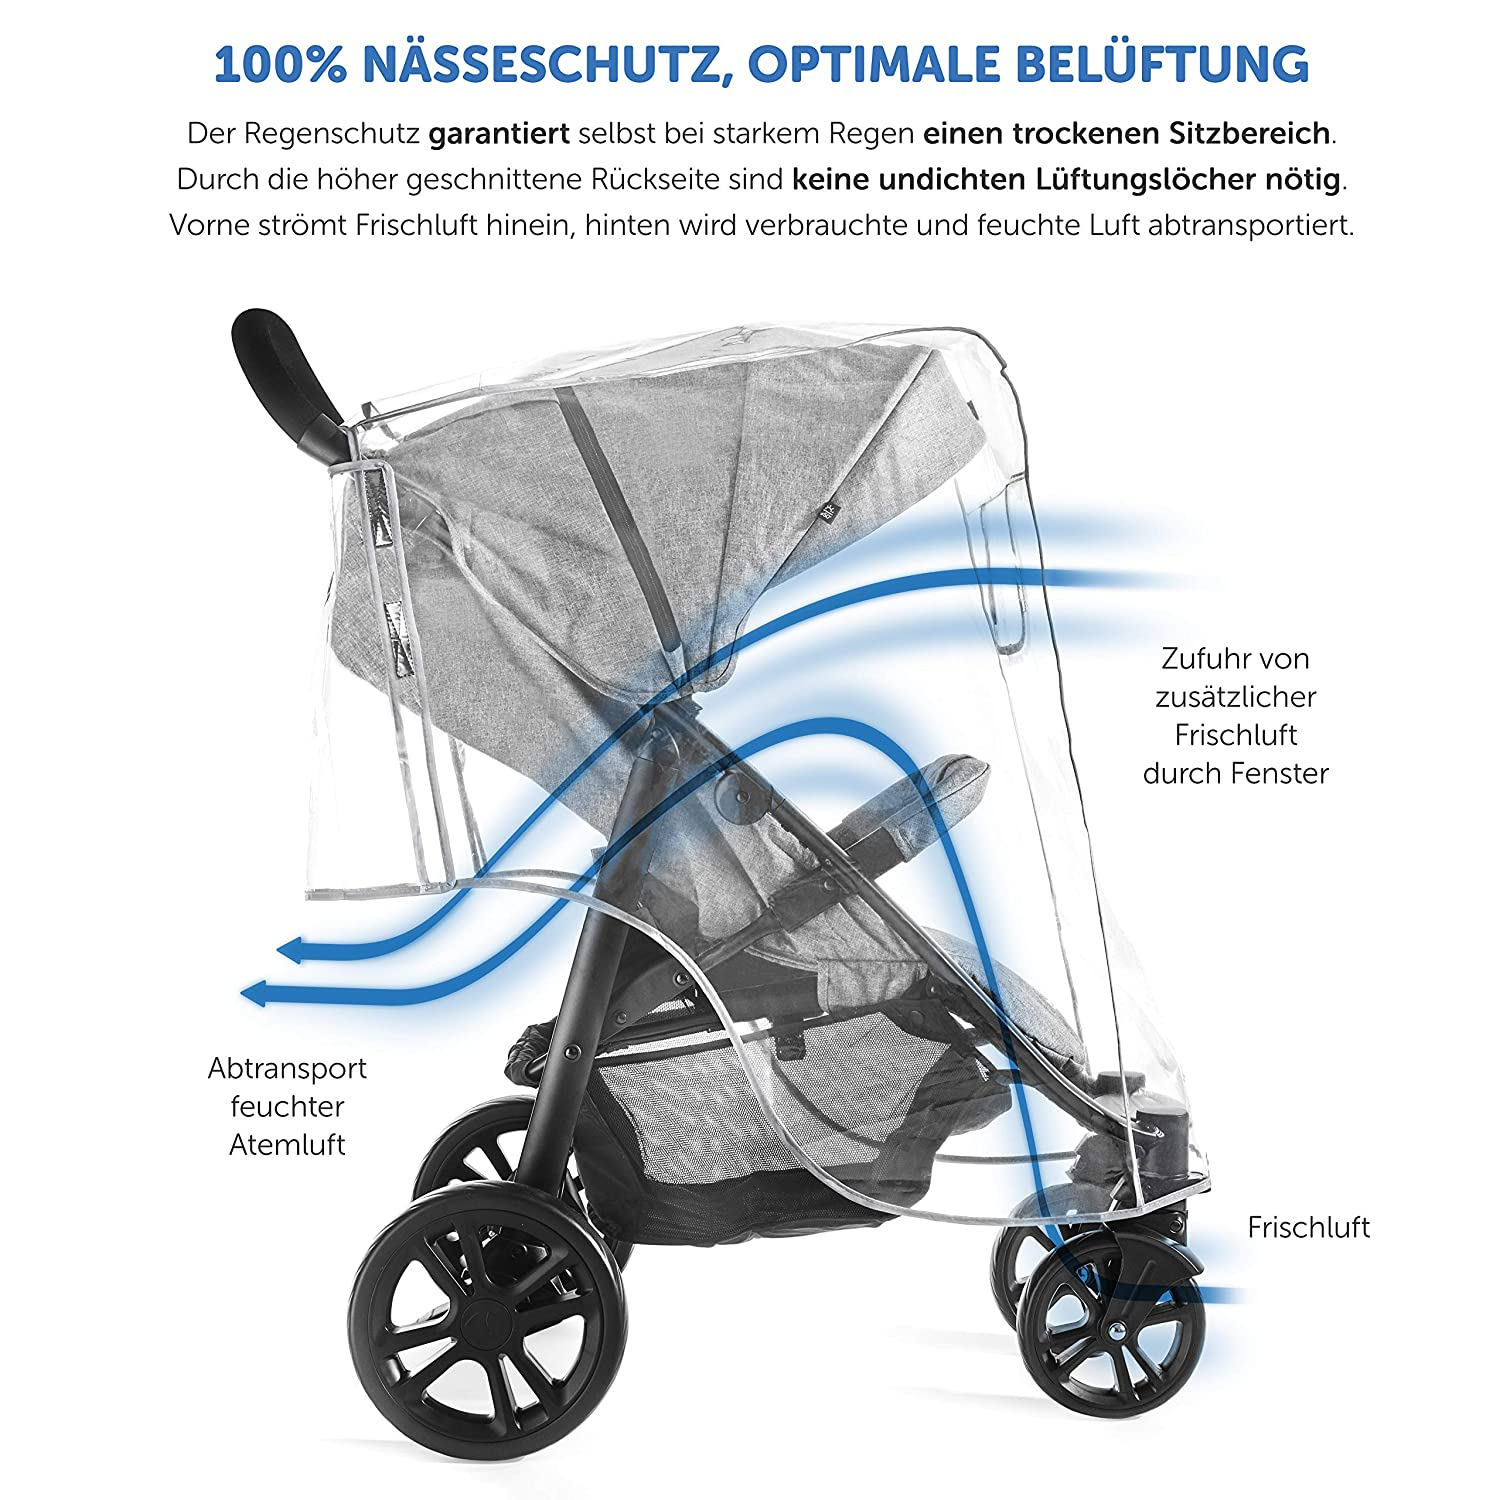 Easy to Install Pushchair PVC-Free Stroller Ideal Air Circulation Flip Open System for Easy Baby Lift in and Out Zamboo Universal Rain Cover for Pram Buggy